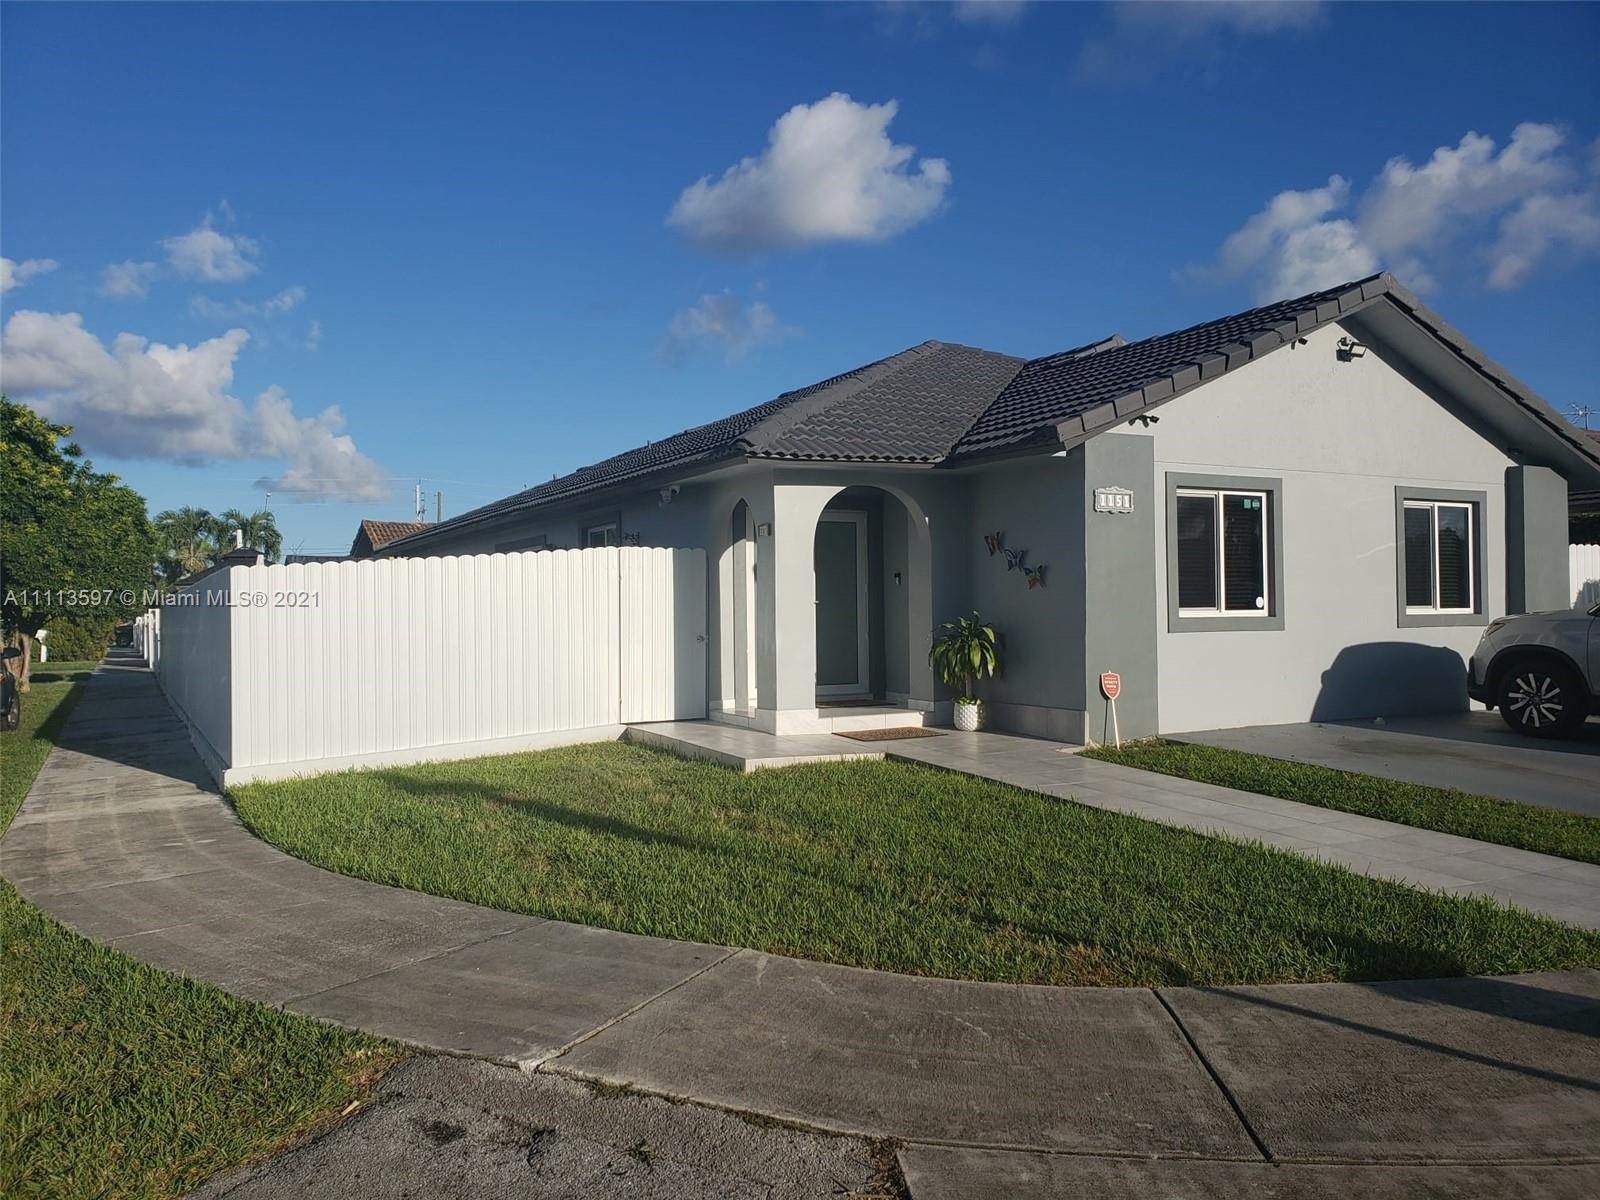 Single Family Home,For Sale,1151 SW 142nd Pl, Miami, Florida 33184,Brickell,realty,broker,condos near me